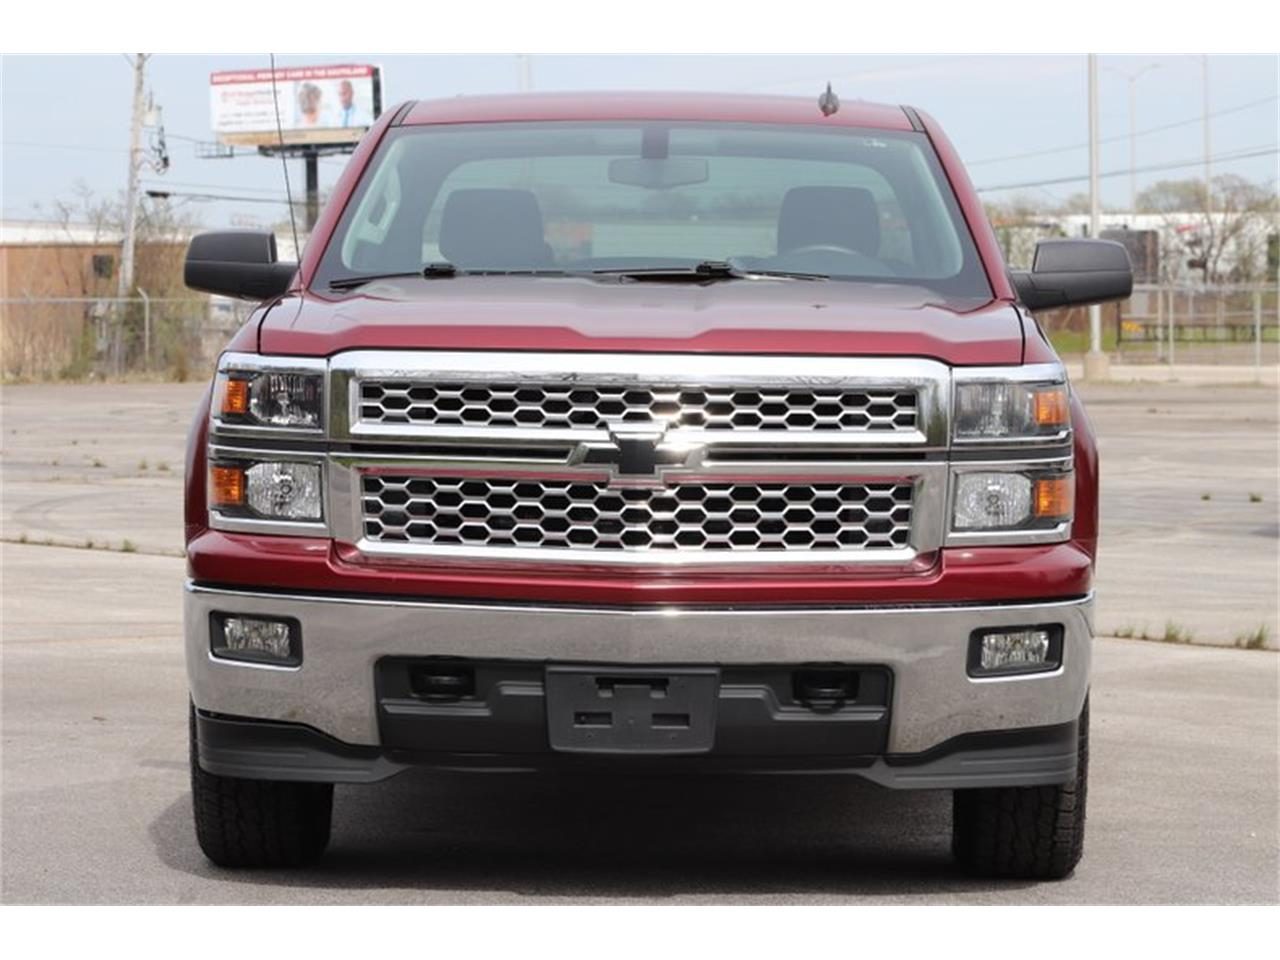 2014 Chevrolet Silverado (CC-1209847) for sale in Alsip, Illinois